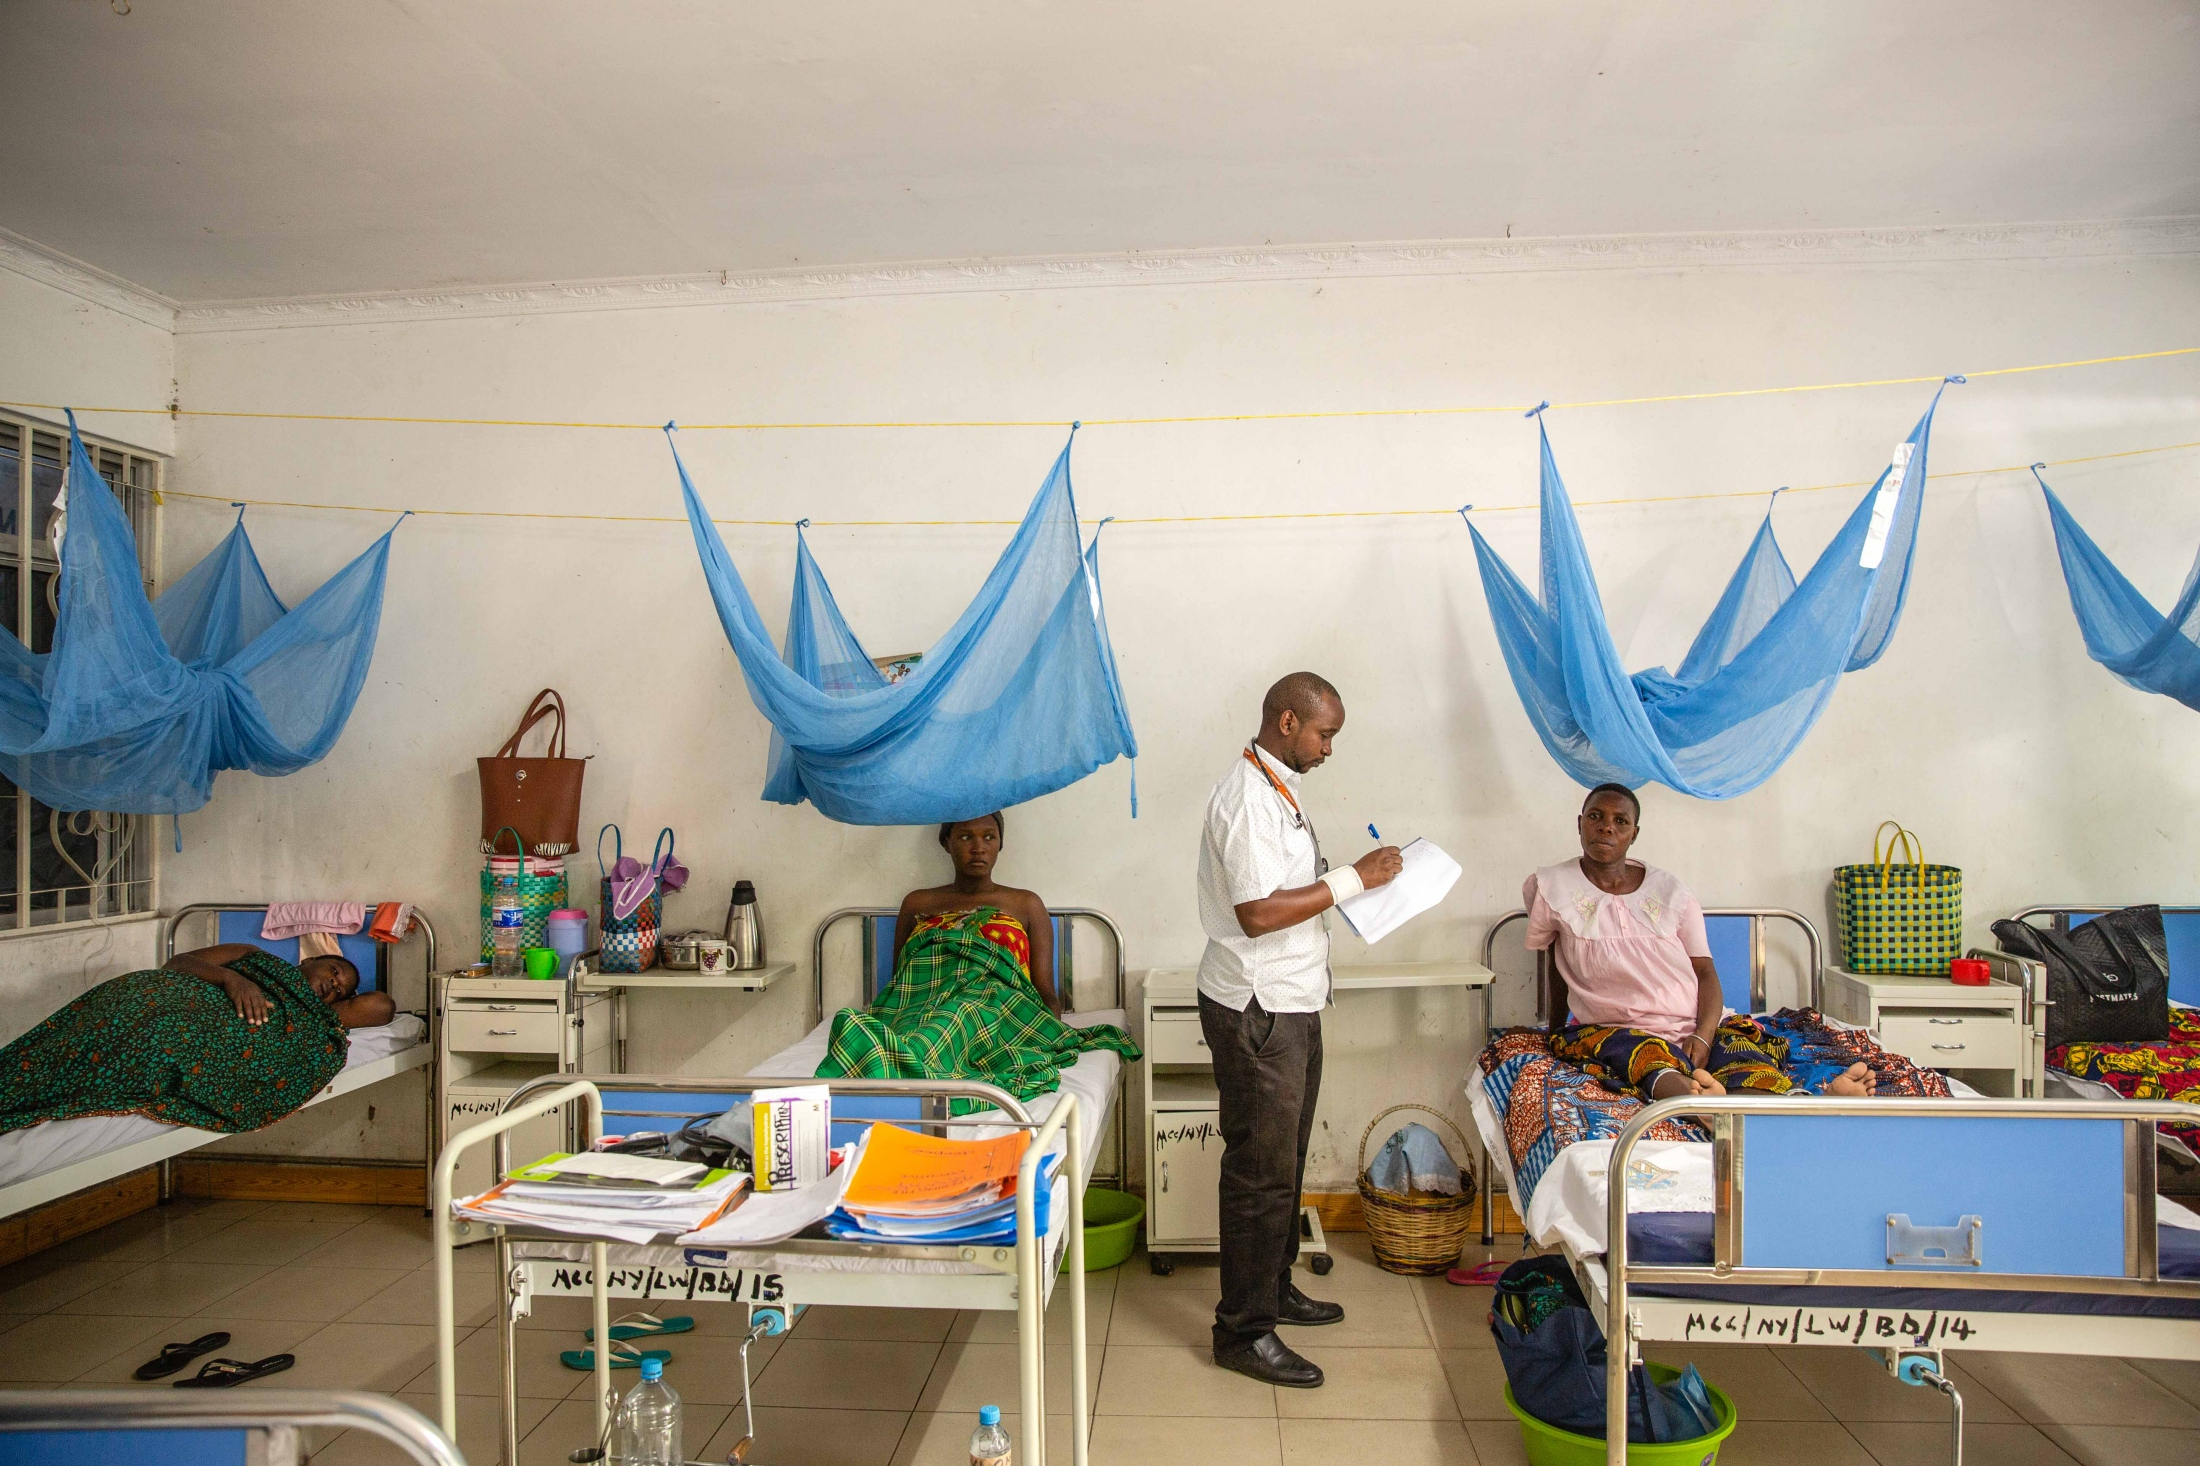 Dr. Chris Paul Tabalo, a Doctor checks on expectant women awaiting delivery in the maternity ward at Nyamagana hospital, Tanzania. For The Aga Khan Foundation.